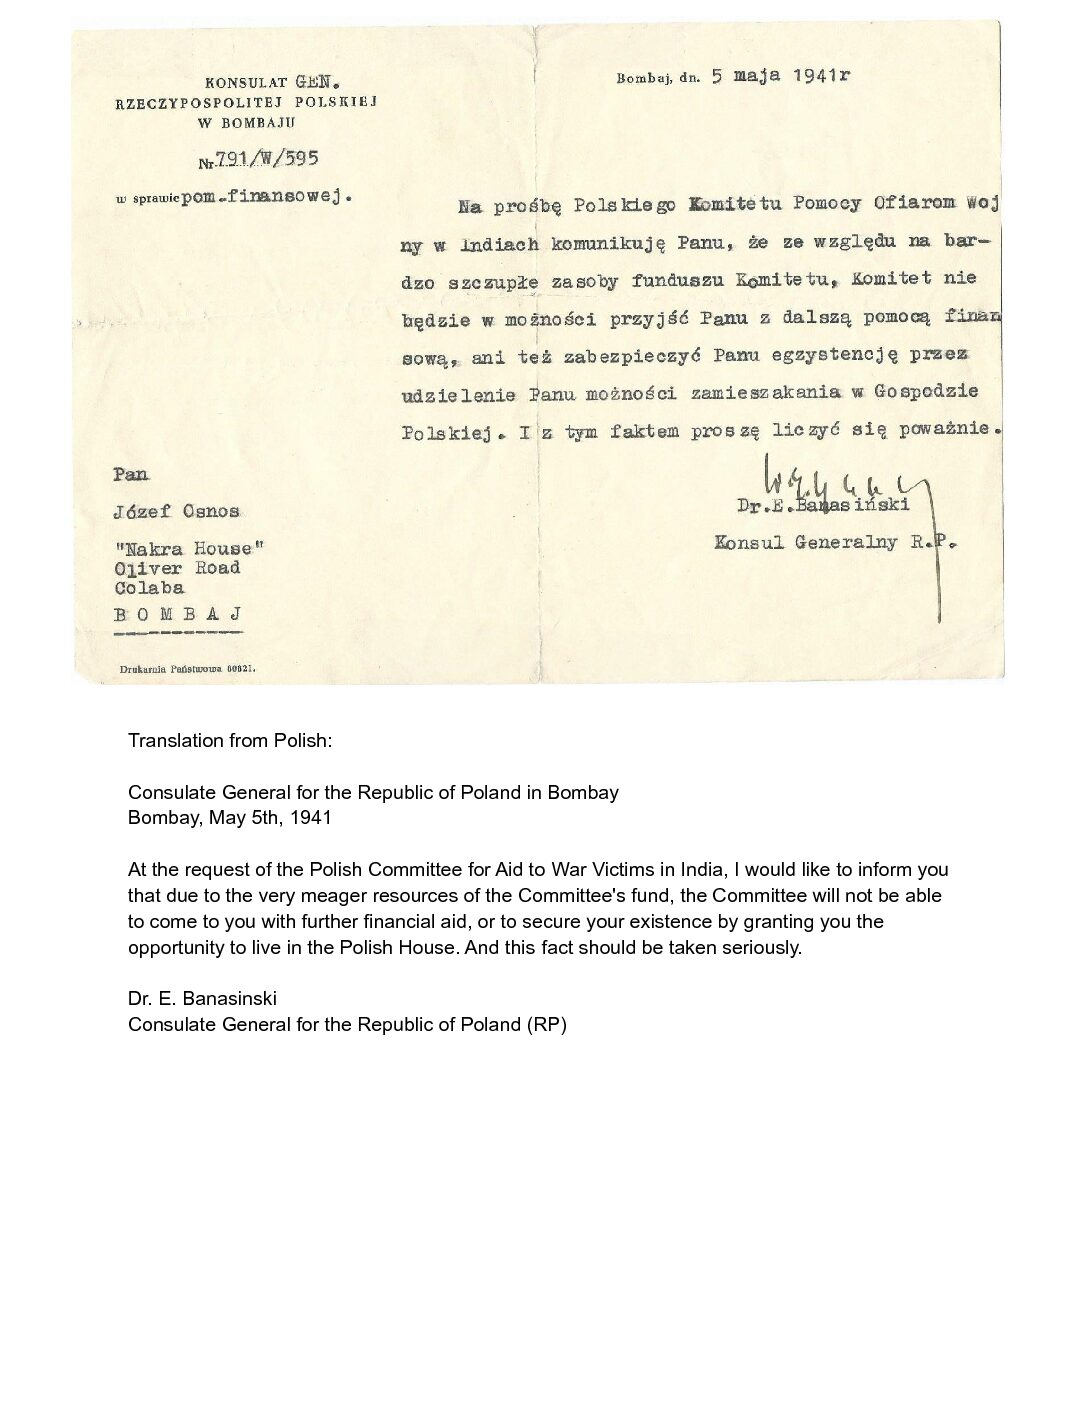 Bombay May 1941 from Polish Consulate